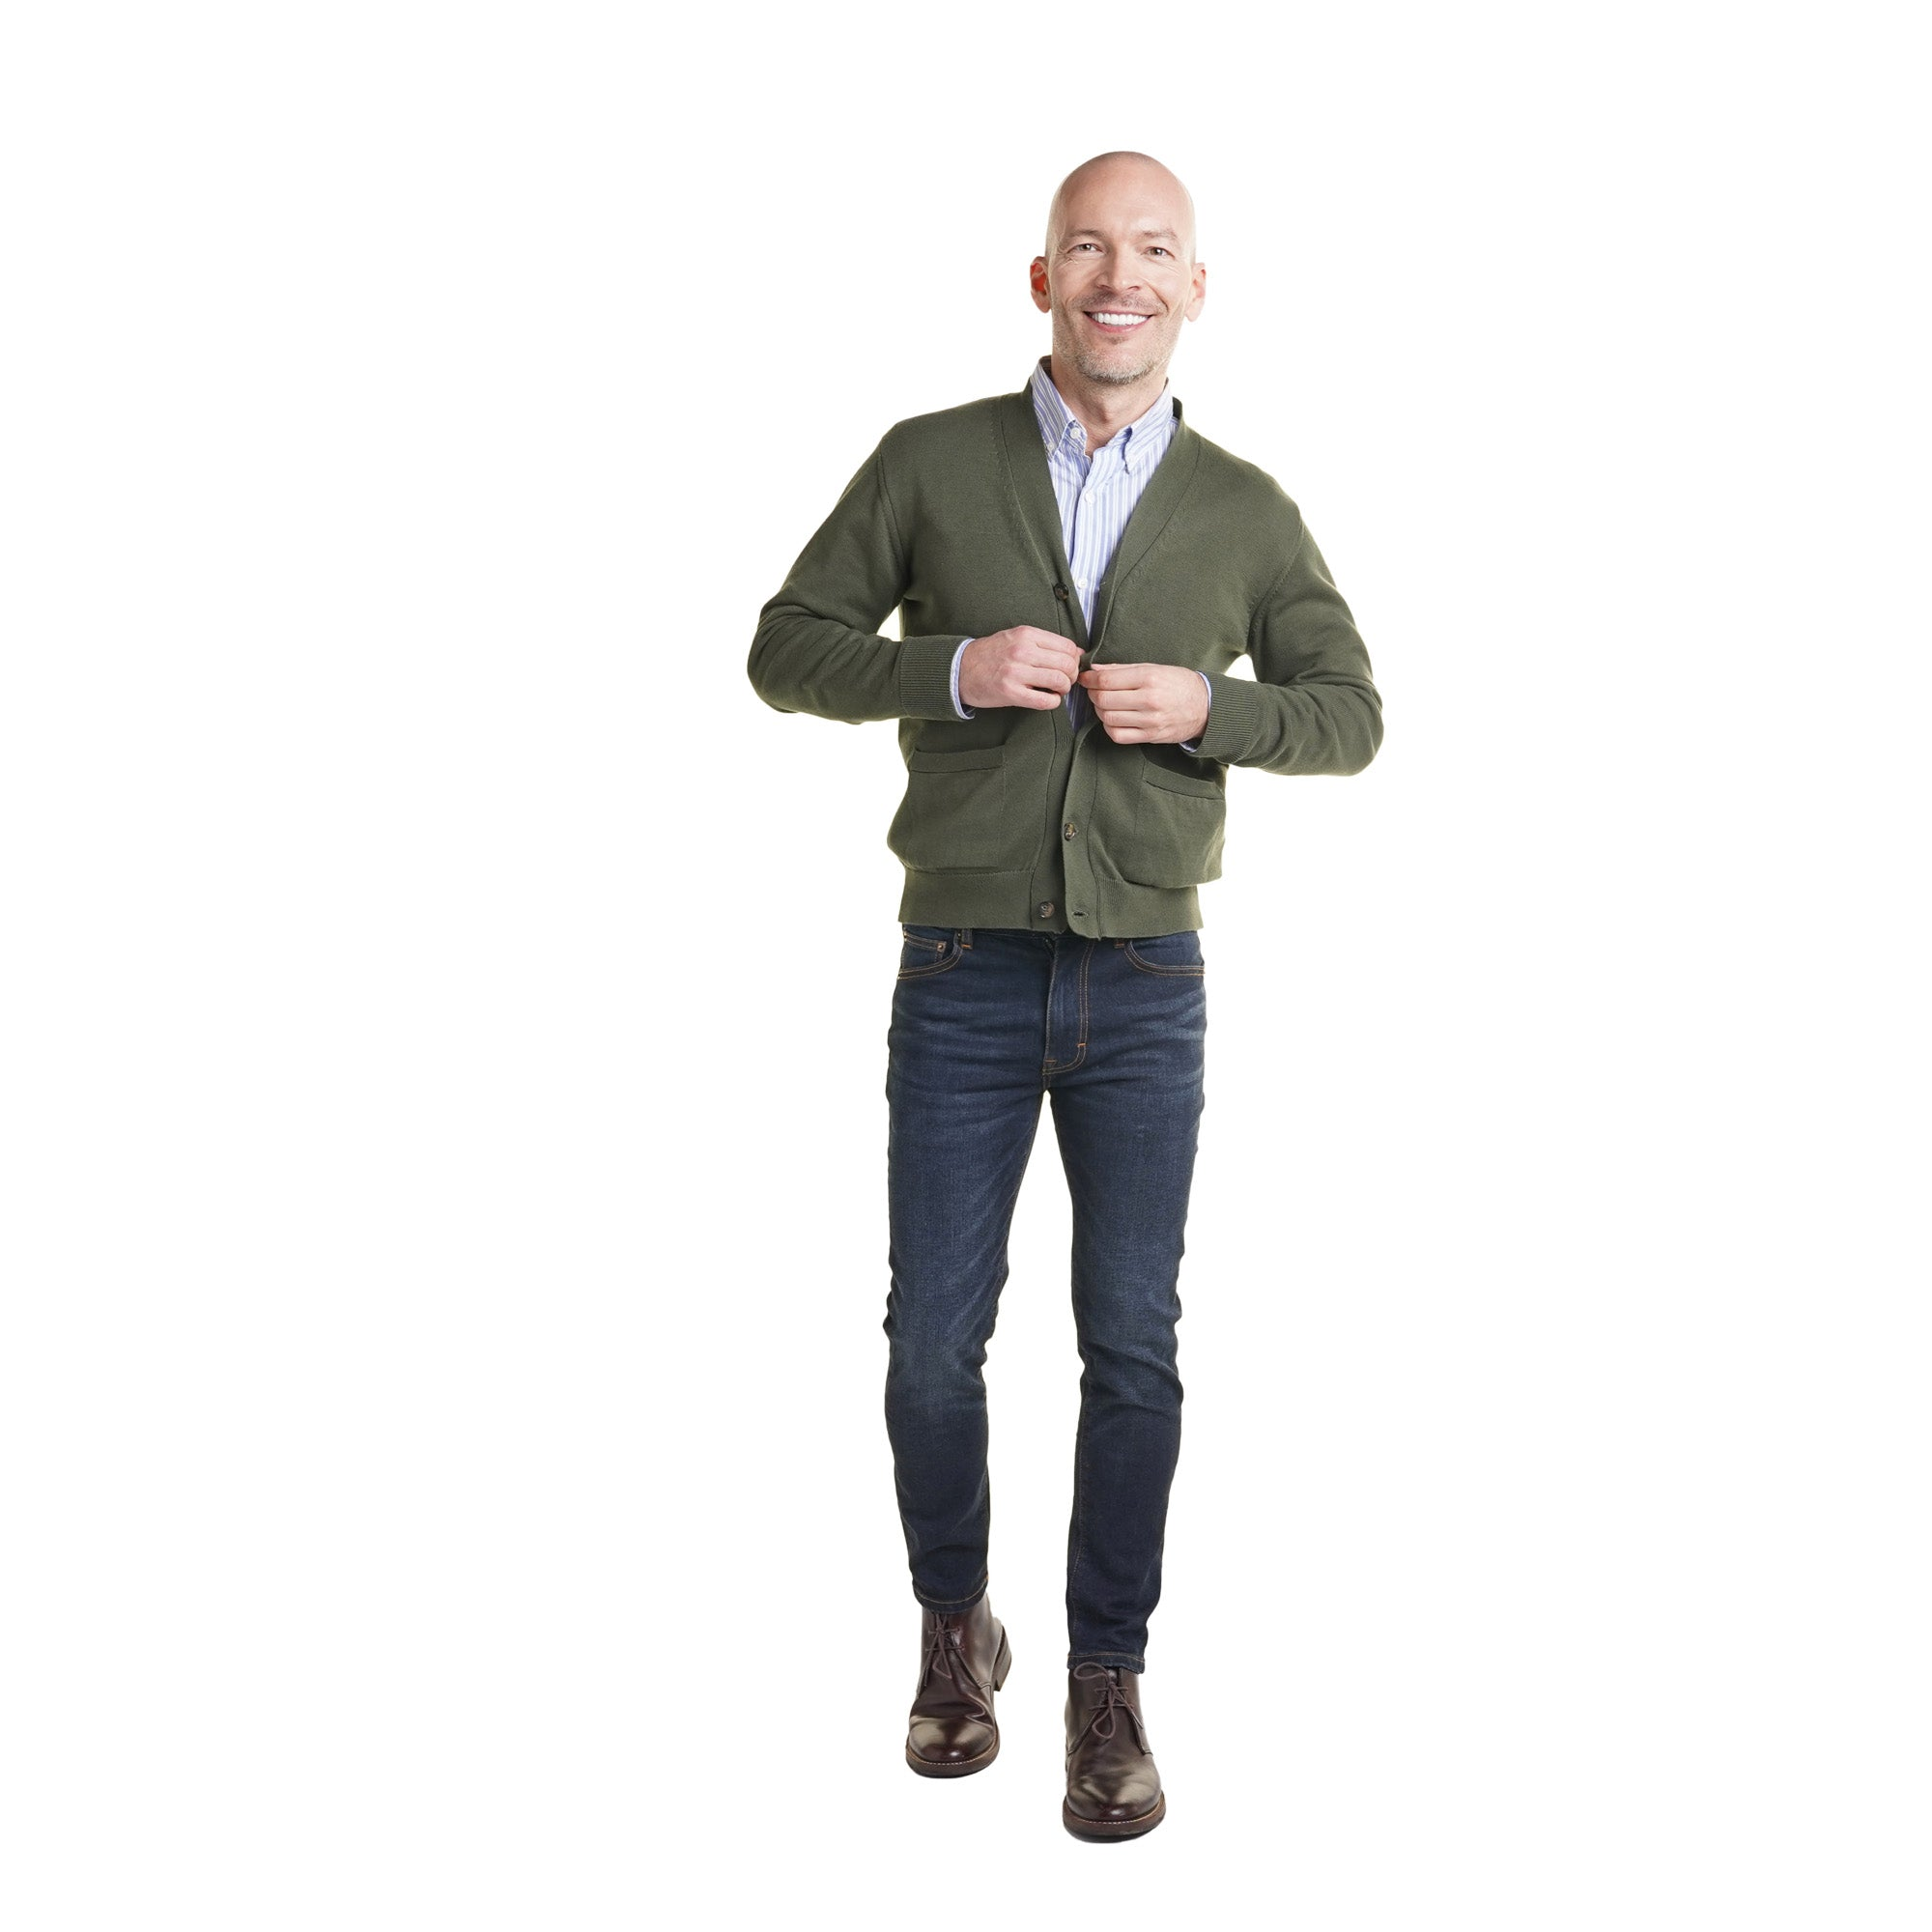 Cardigan with Oxford shirt